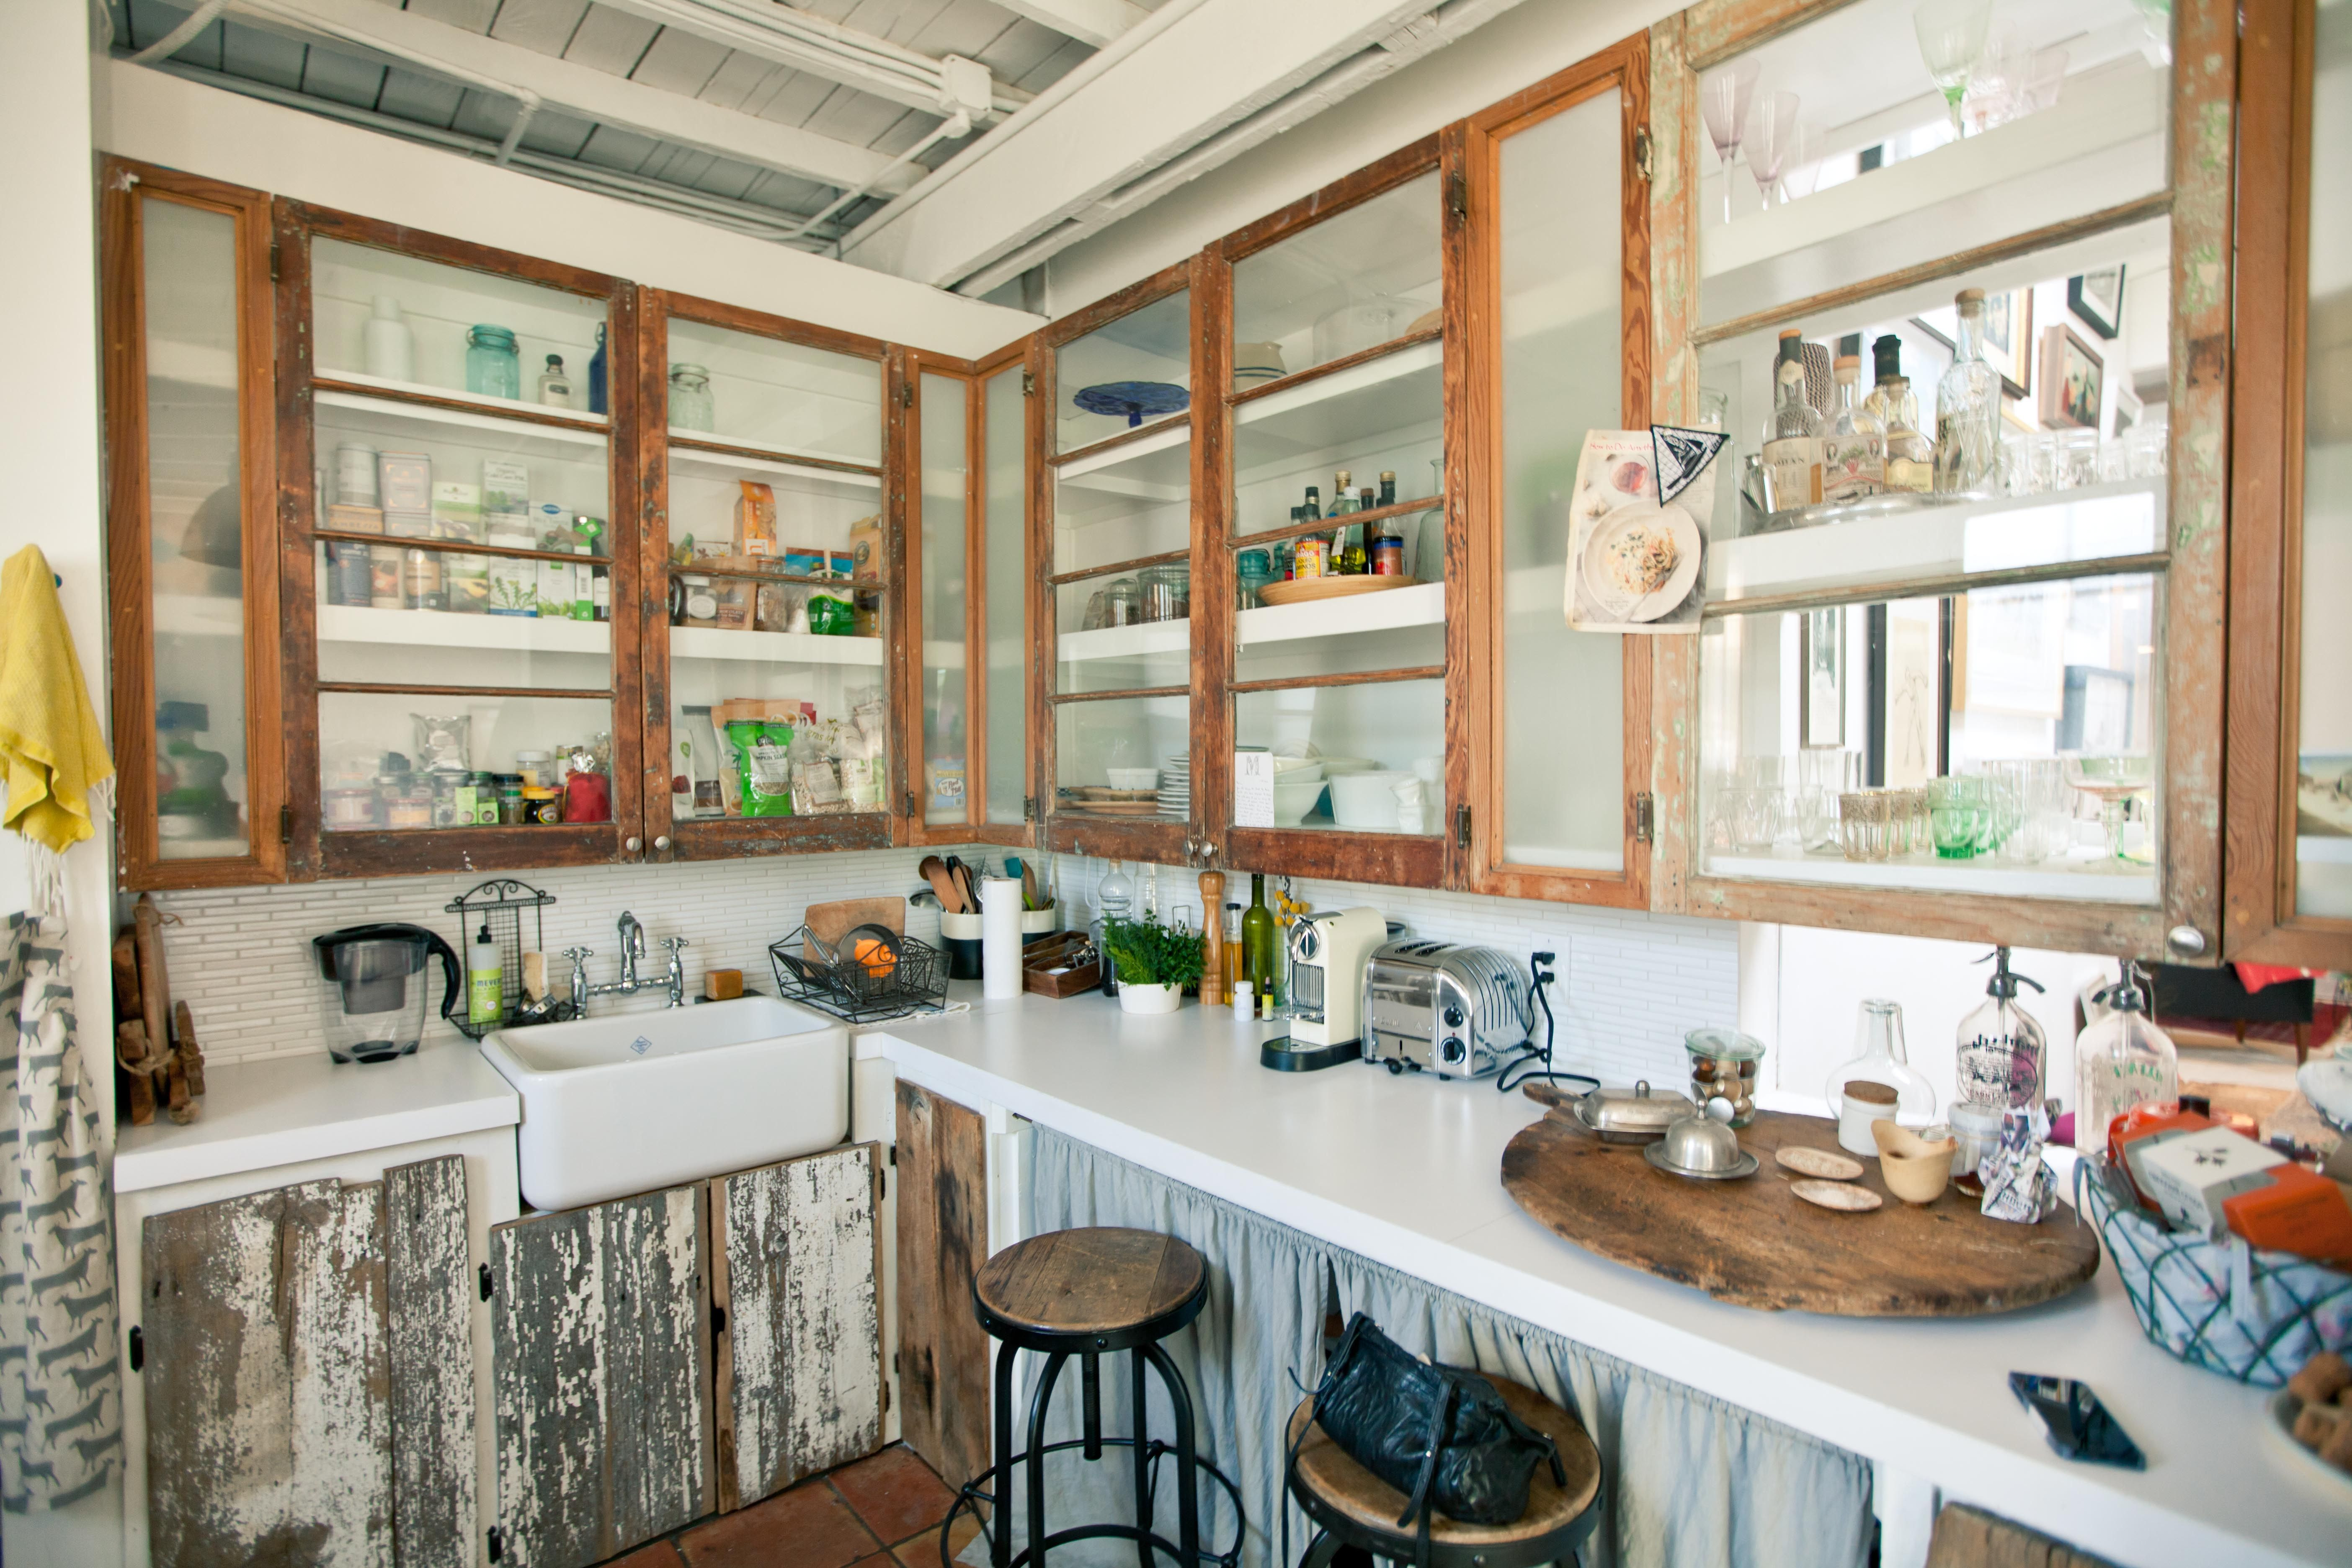 Reclaimed Wood Cabinets Kitchen Cabinet Remodel Reclaimed Kitchen Cabinets Recycled Kitchen